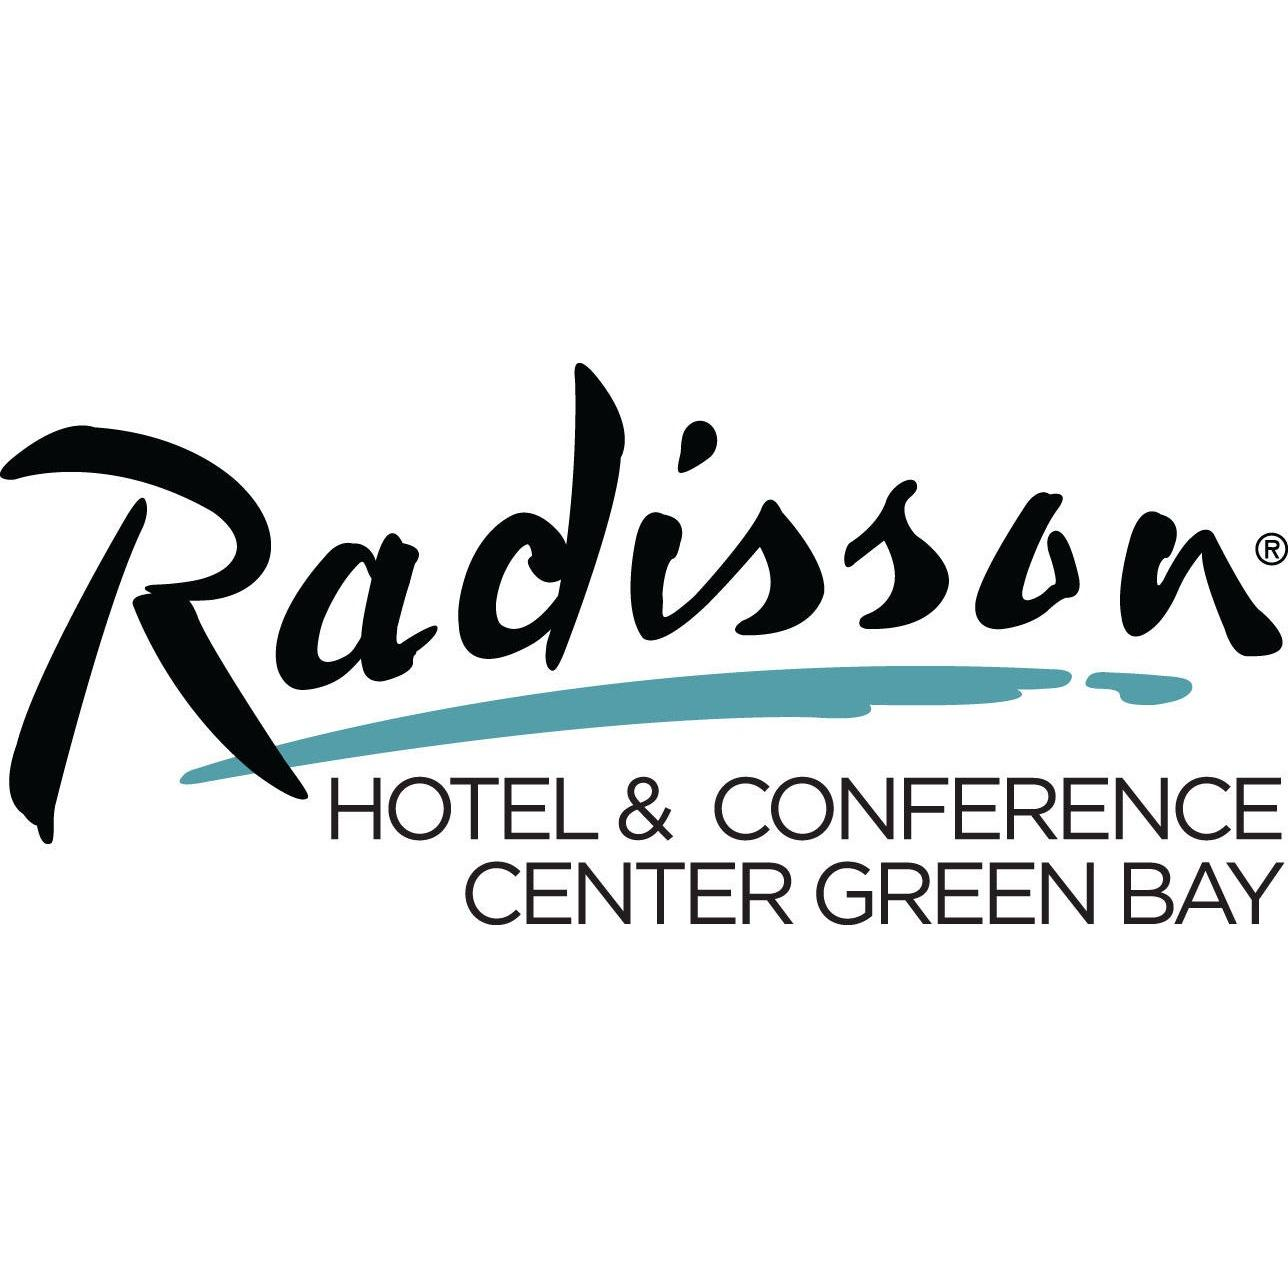 Radisson Hotel & Conference Center Green Bay